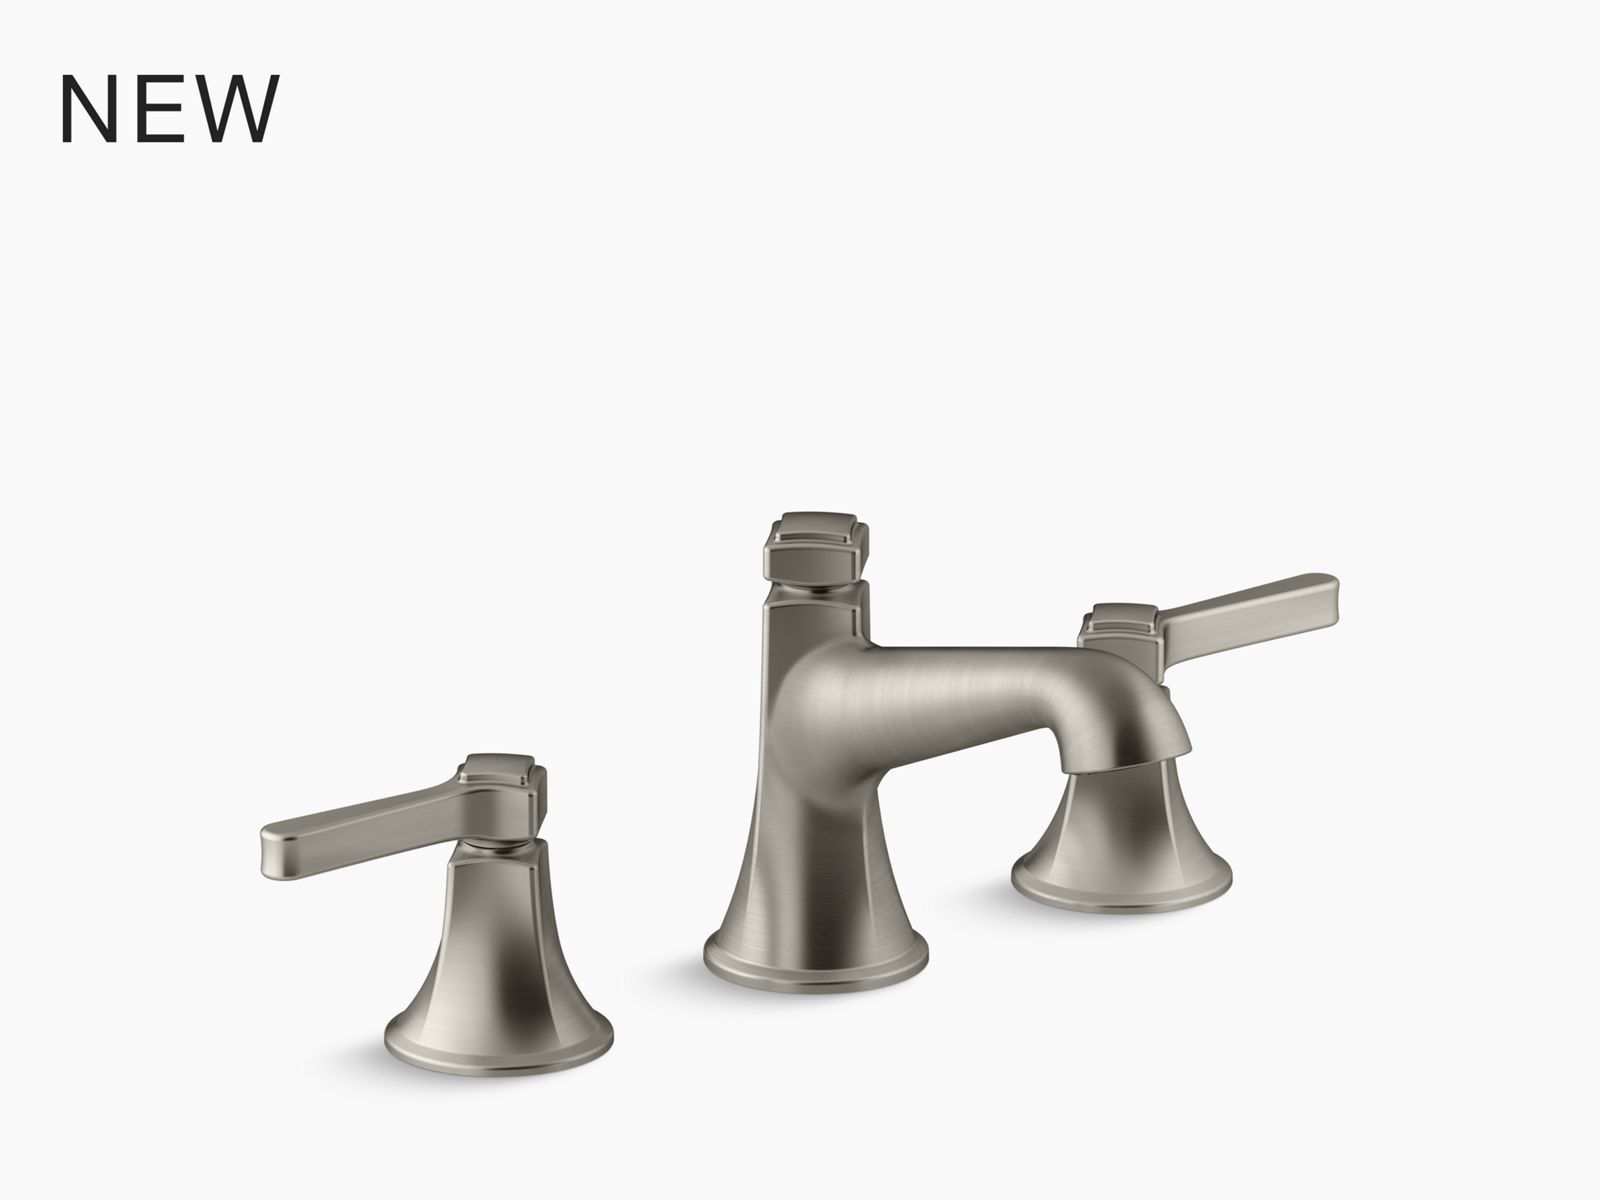 simplice touchless pull down kitchen sink faucet